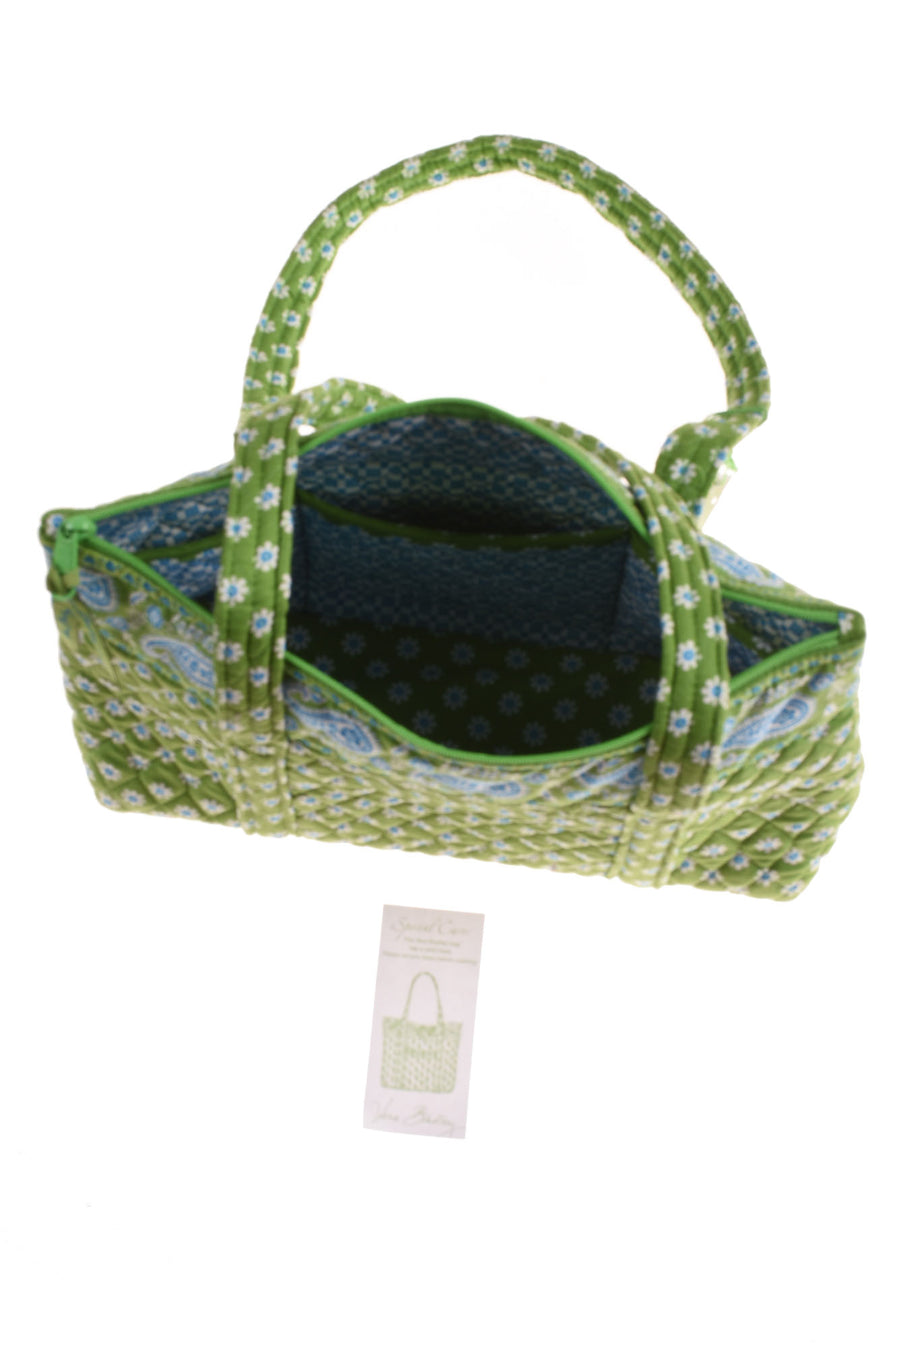 NEW Vera Bradley Women's Handbag N/A Betsy Apple Green